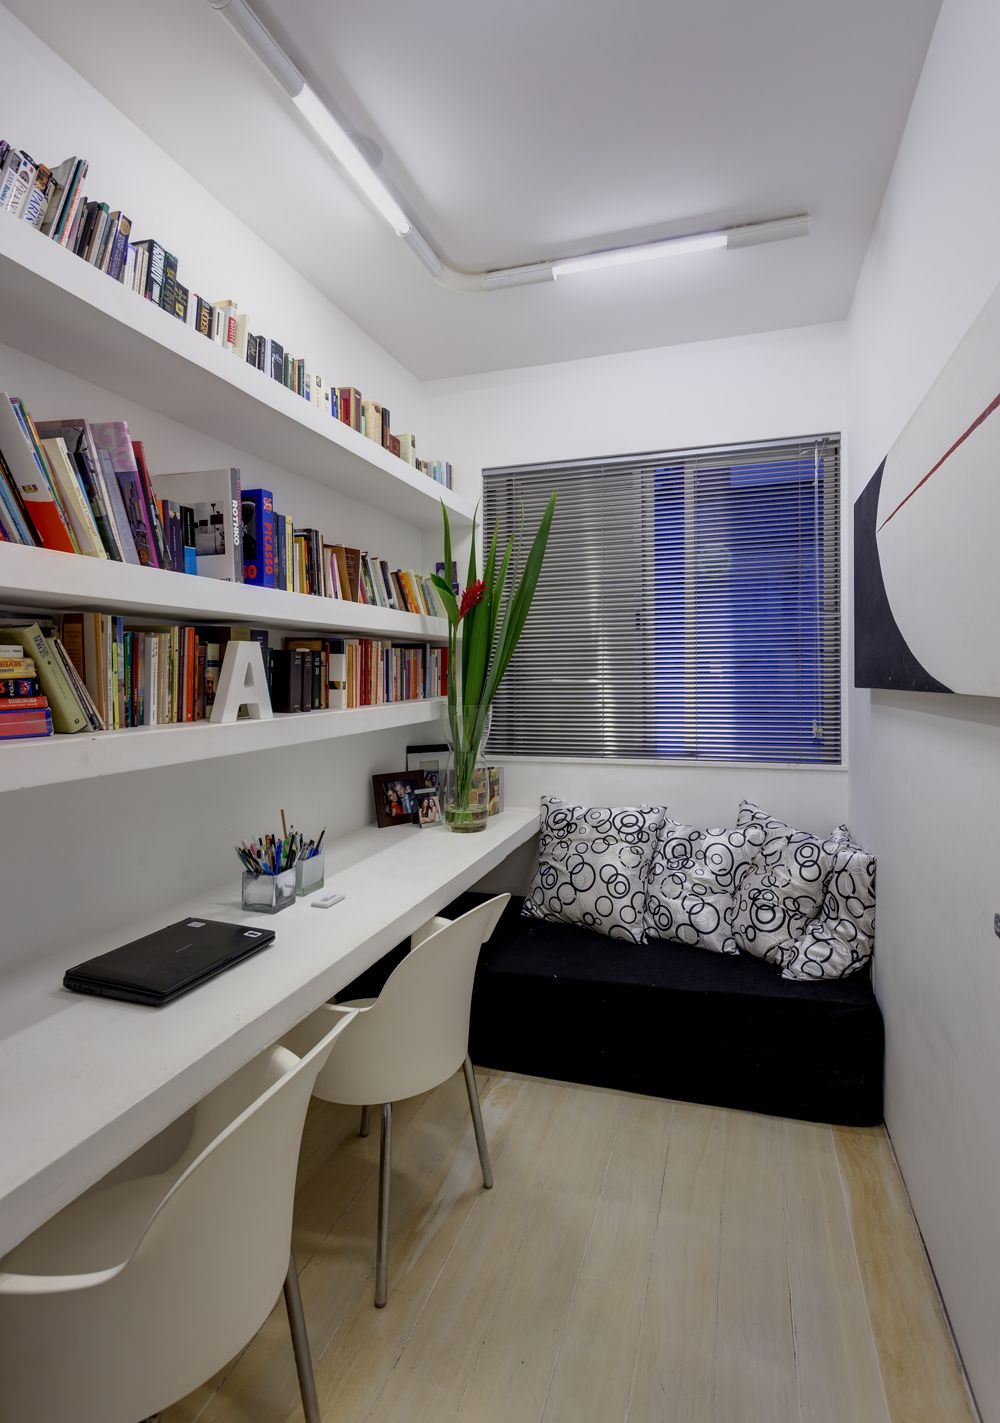 home office e quarto de hospedes compacto DOCE LAR Pinterest